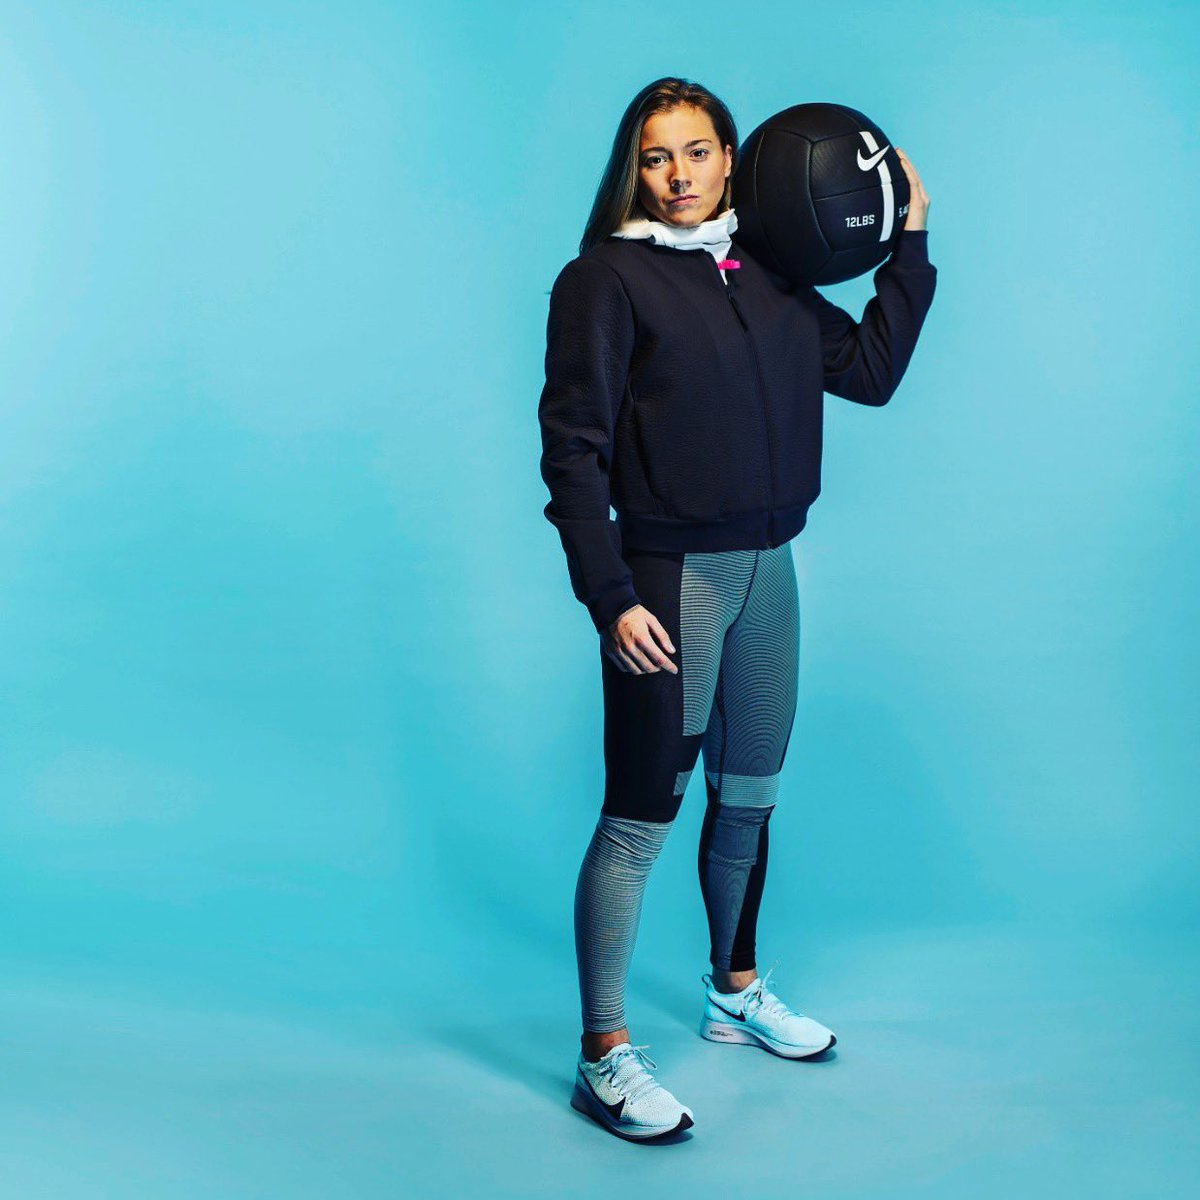 Shooting with @NikeUK @nikewomen @nikesportswear for the new Tech pack collection  this range is  #nikesportwear #PretendingToBeAModel <br>http://pic.twitter.com/19J1IqOZsu